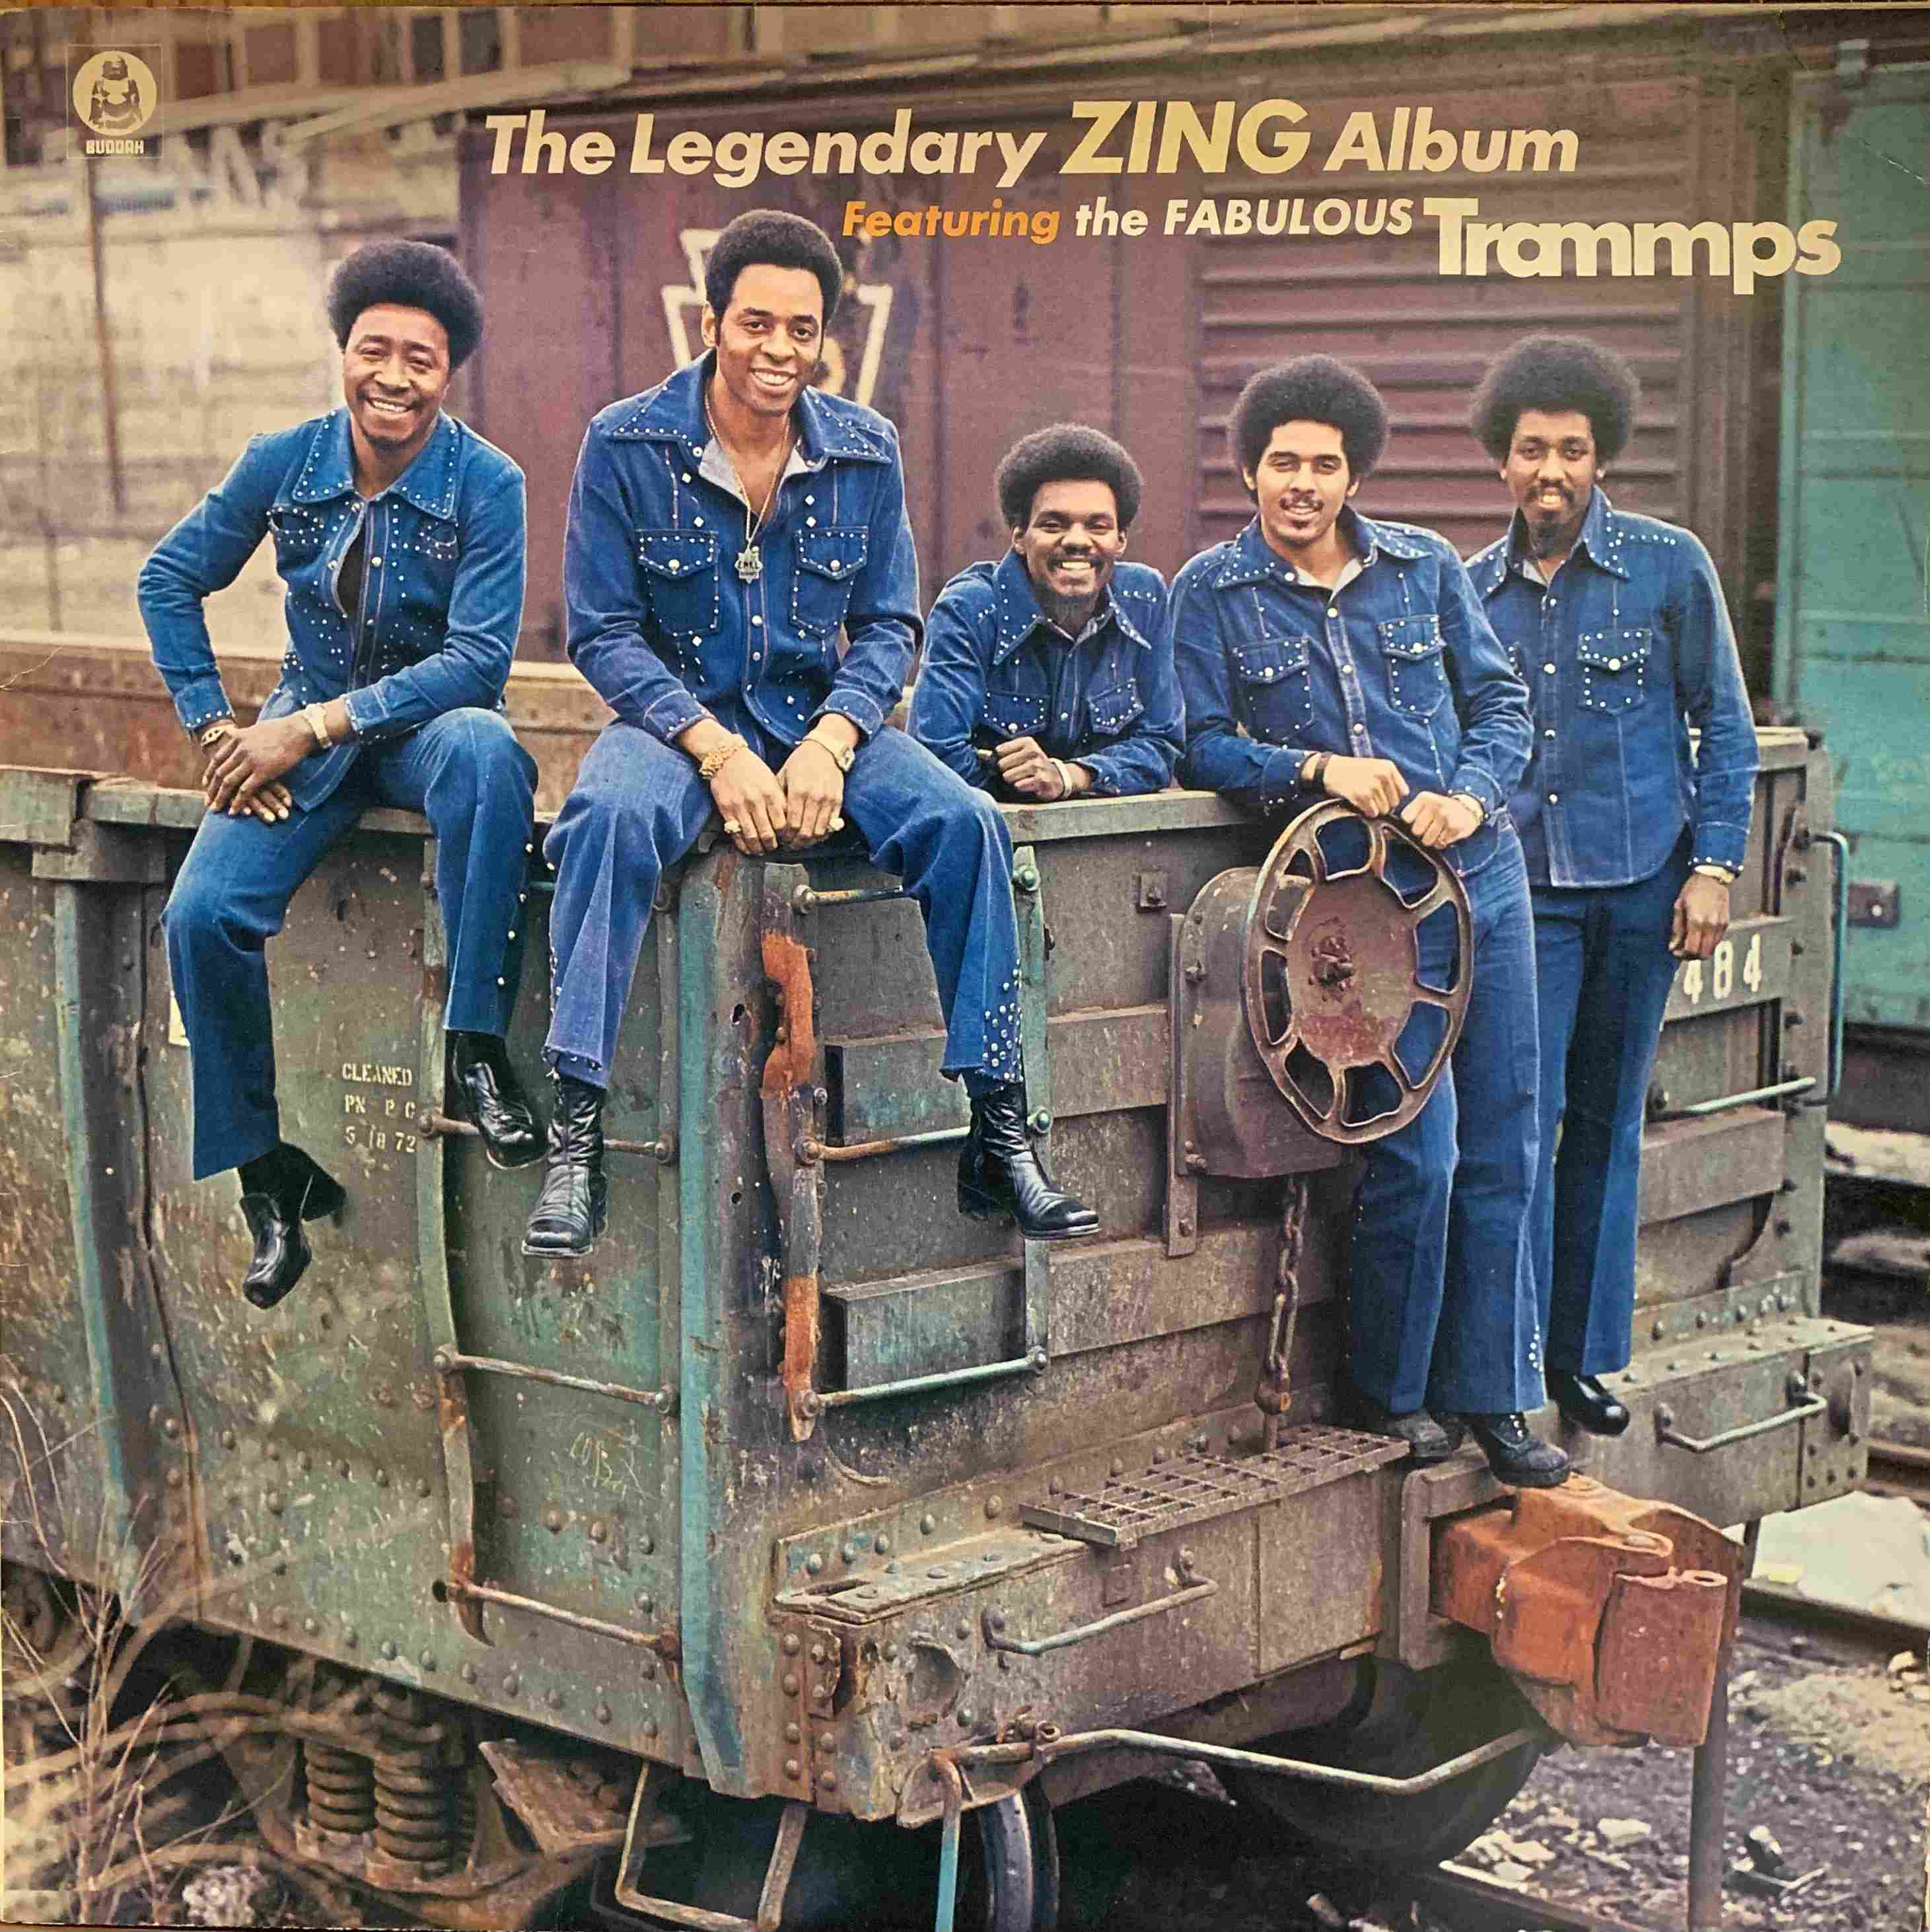 The Legendary Zing Album Featuring The Trammps